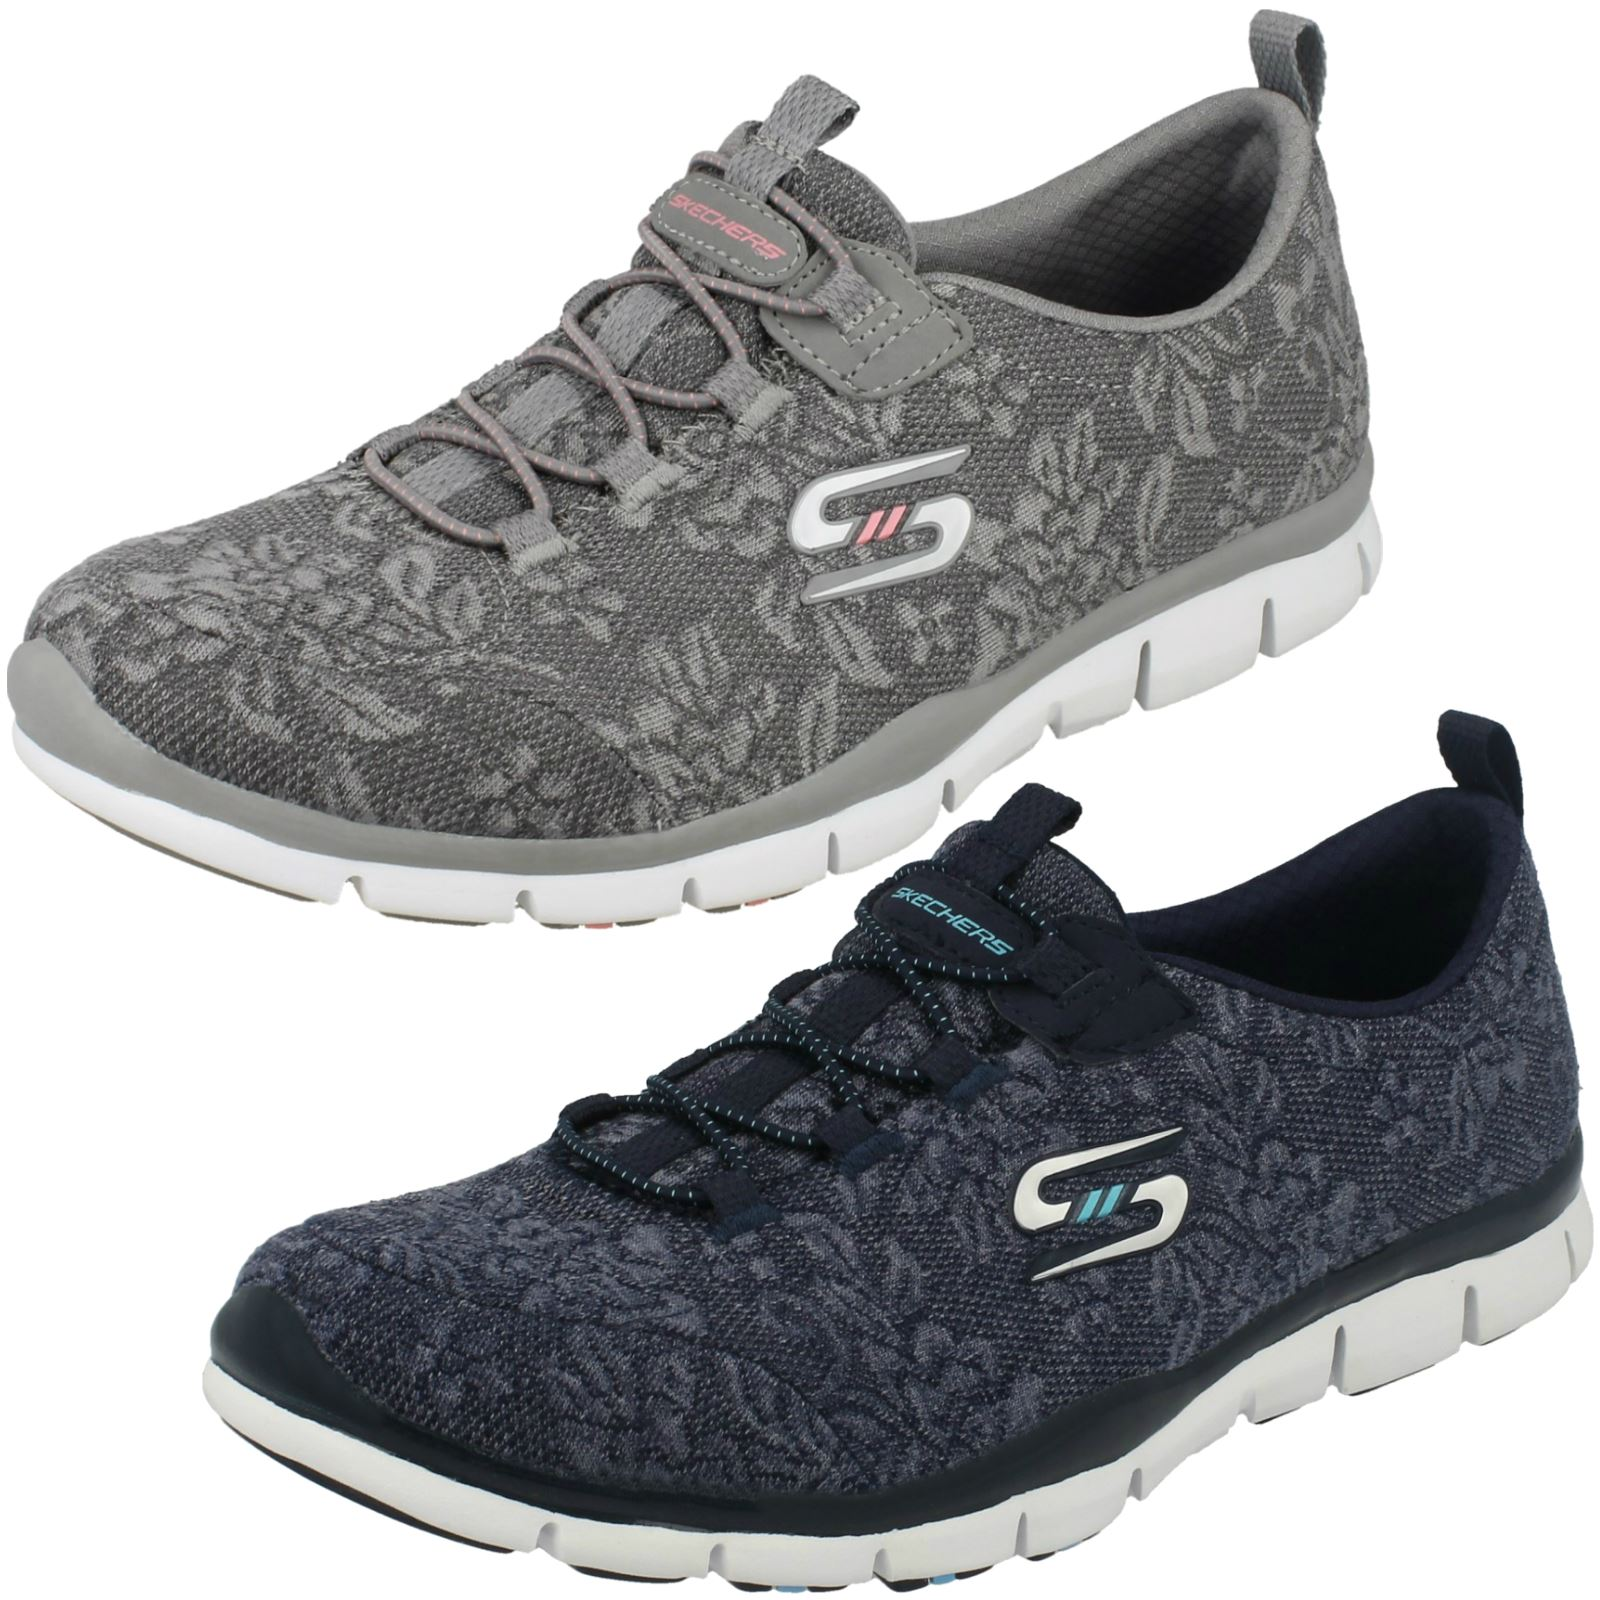 the best attitude e2724 46498 Details about Ladies Skechers Lace Detail Slip On Trainers Lacey 22764